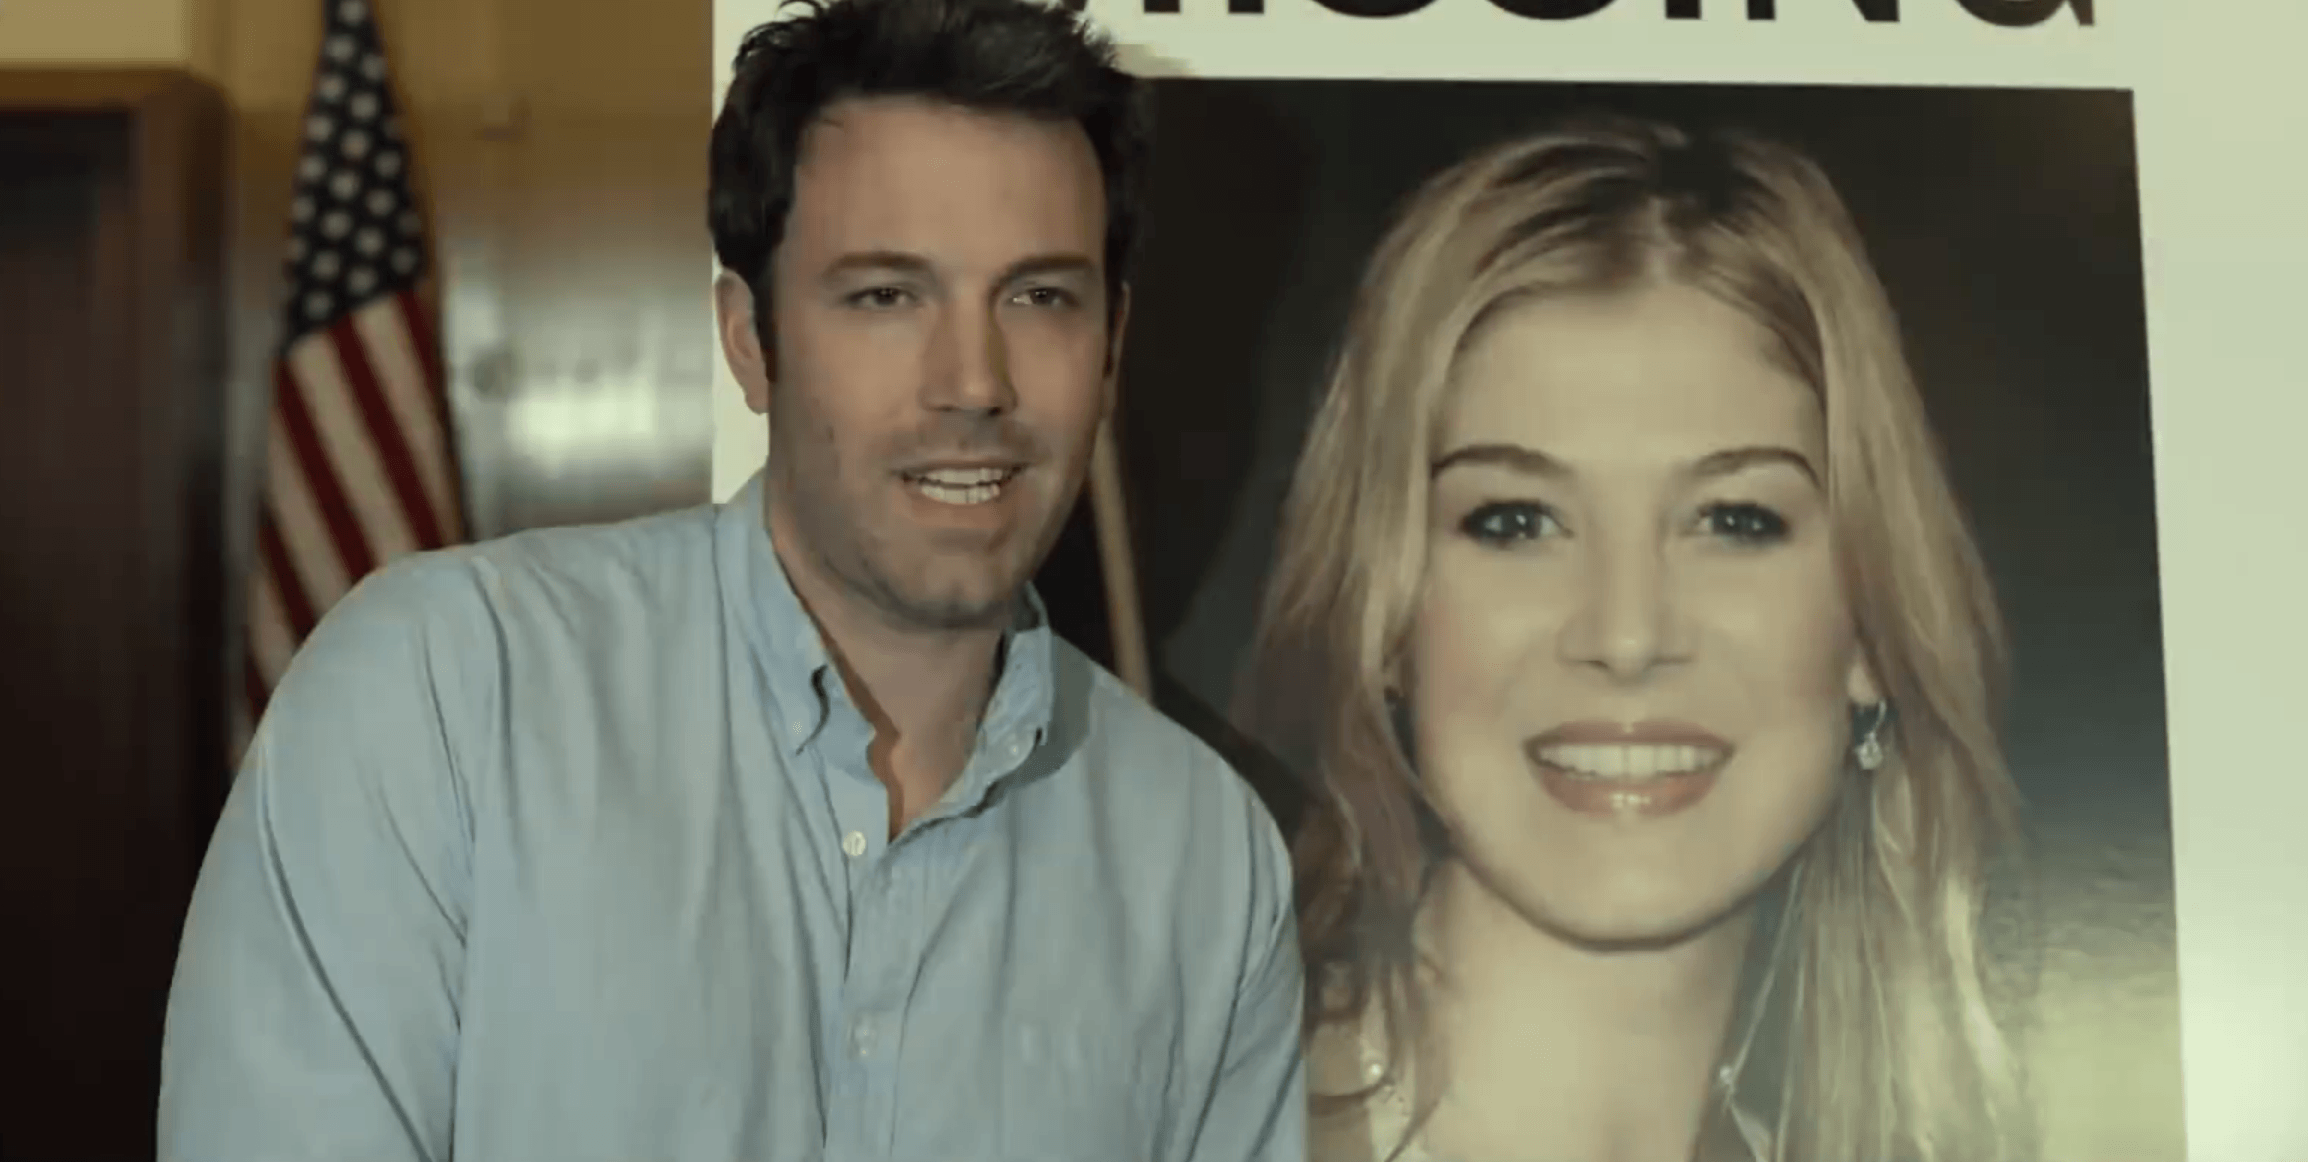 If this smile is anything to go by... (Picture courtesy of 20th Century Fox/ Gone Girl trailer)